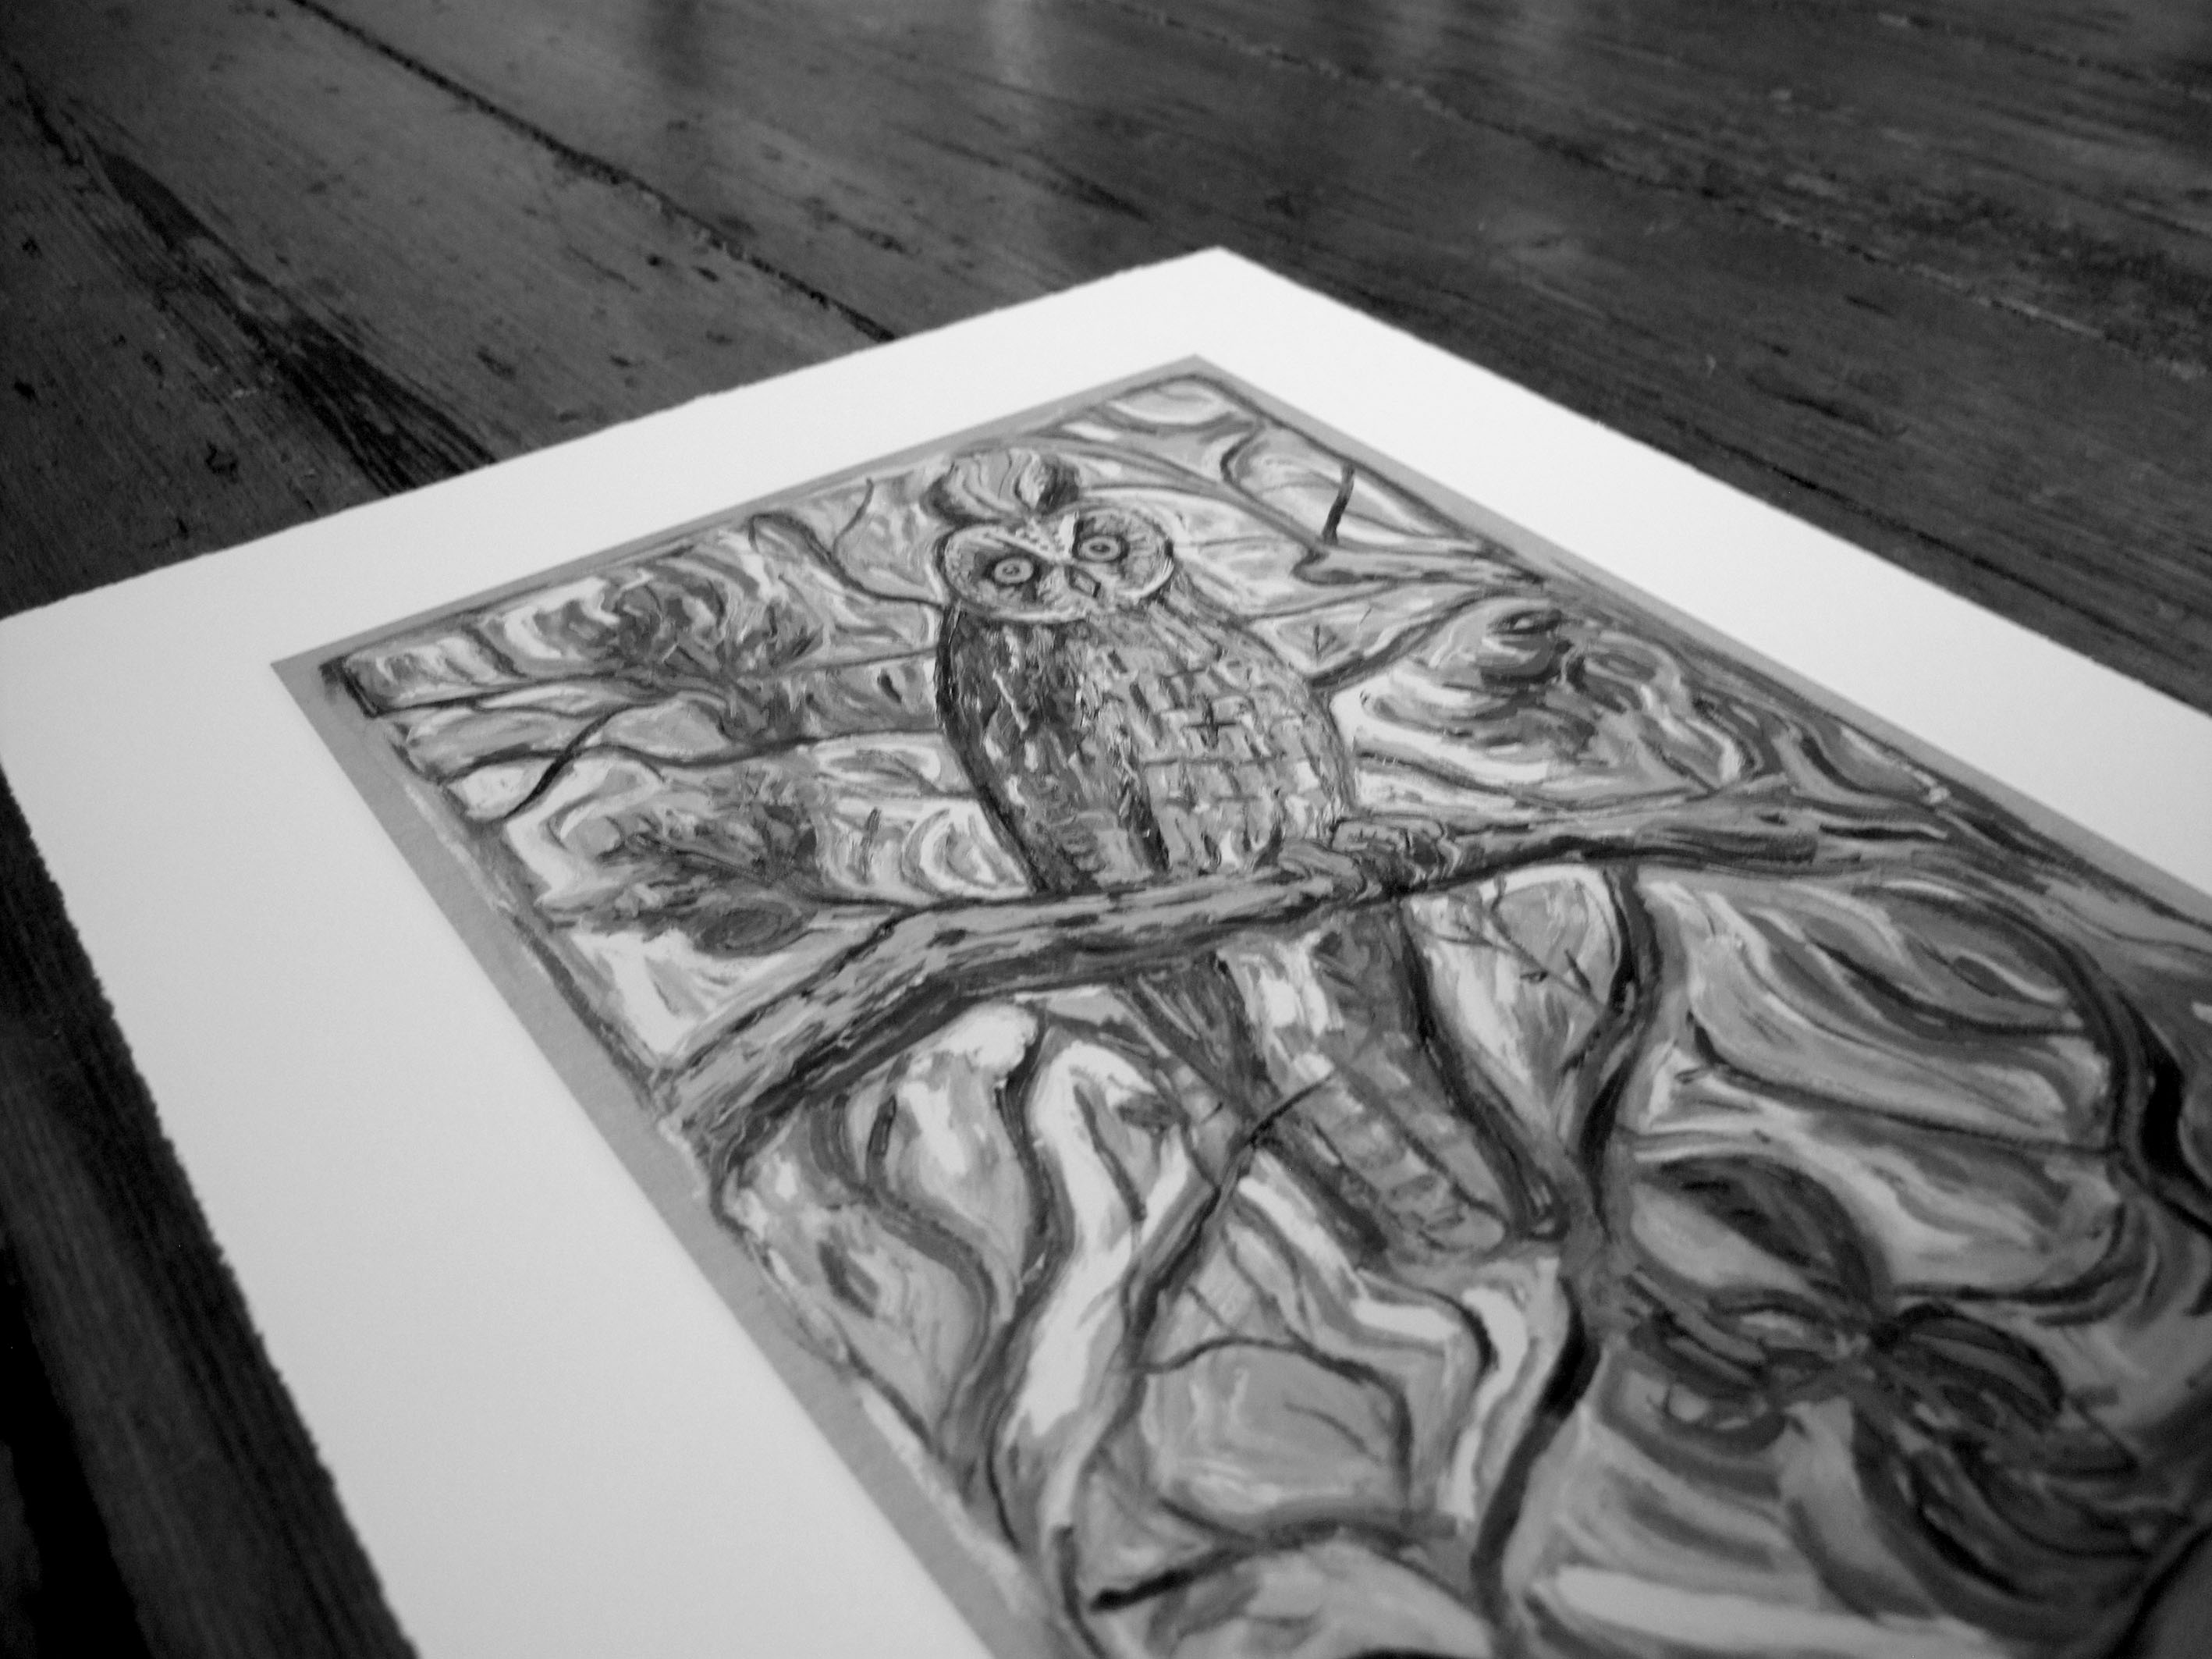 Laughing Owl by the wonderful Mr Billy Childish  ac6e6ab13c079